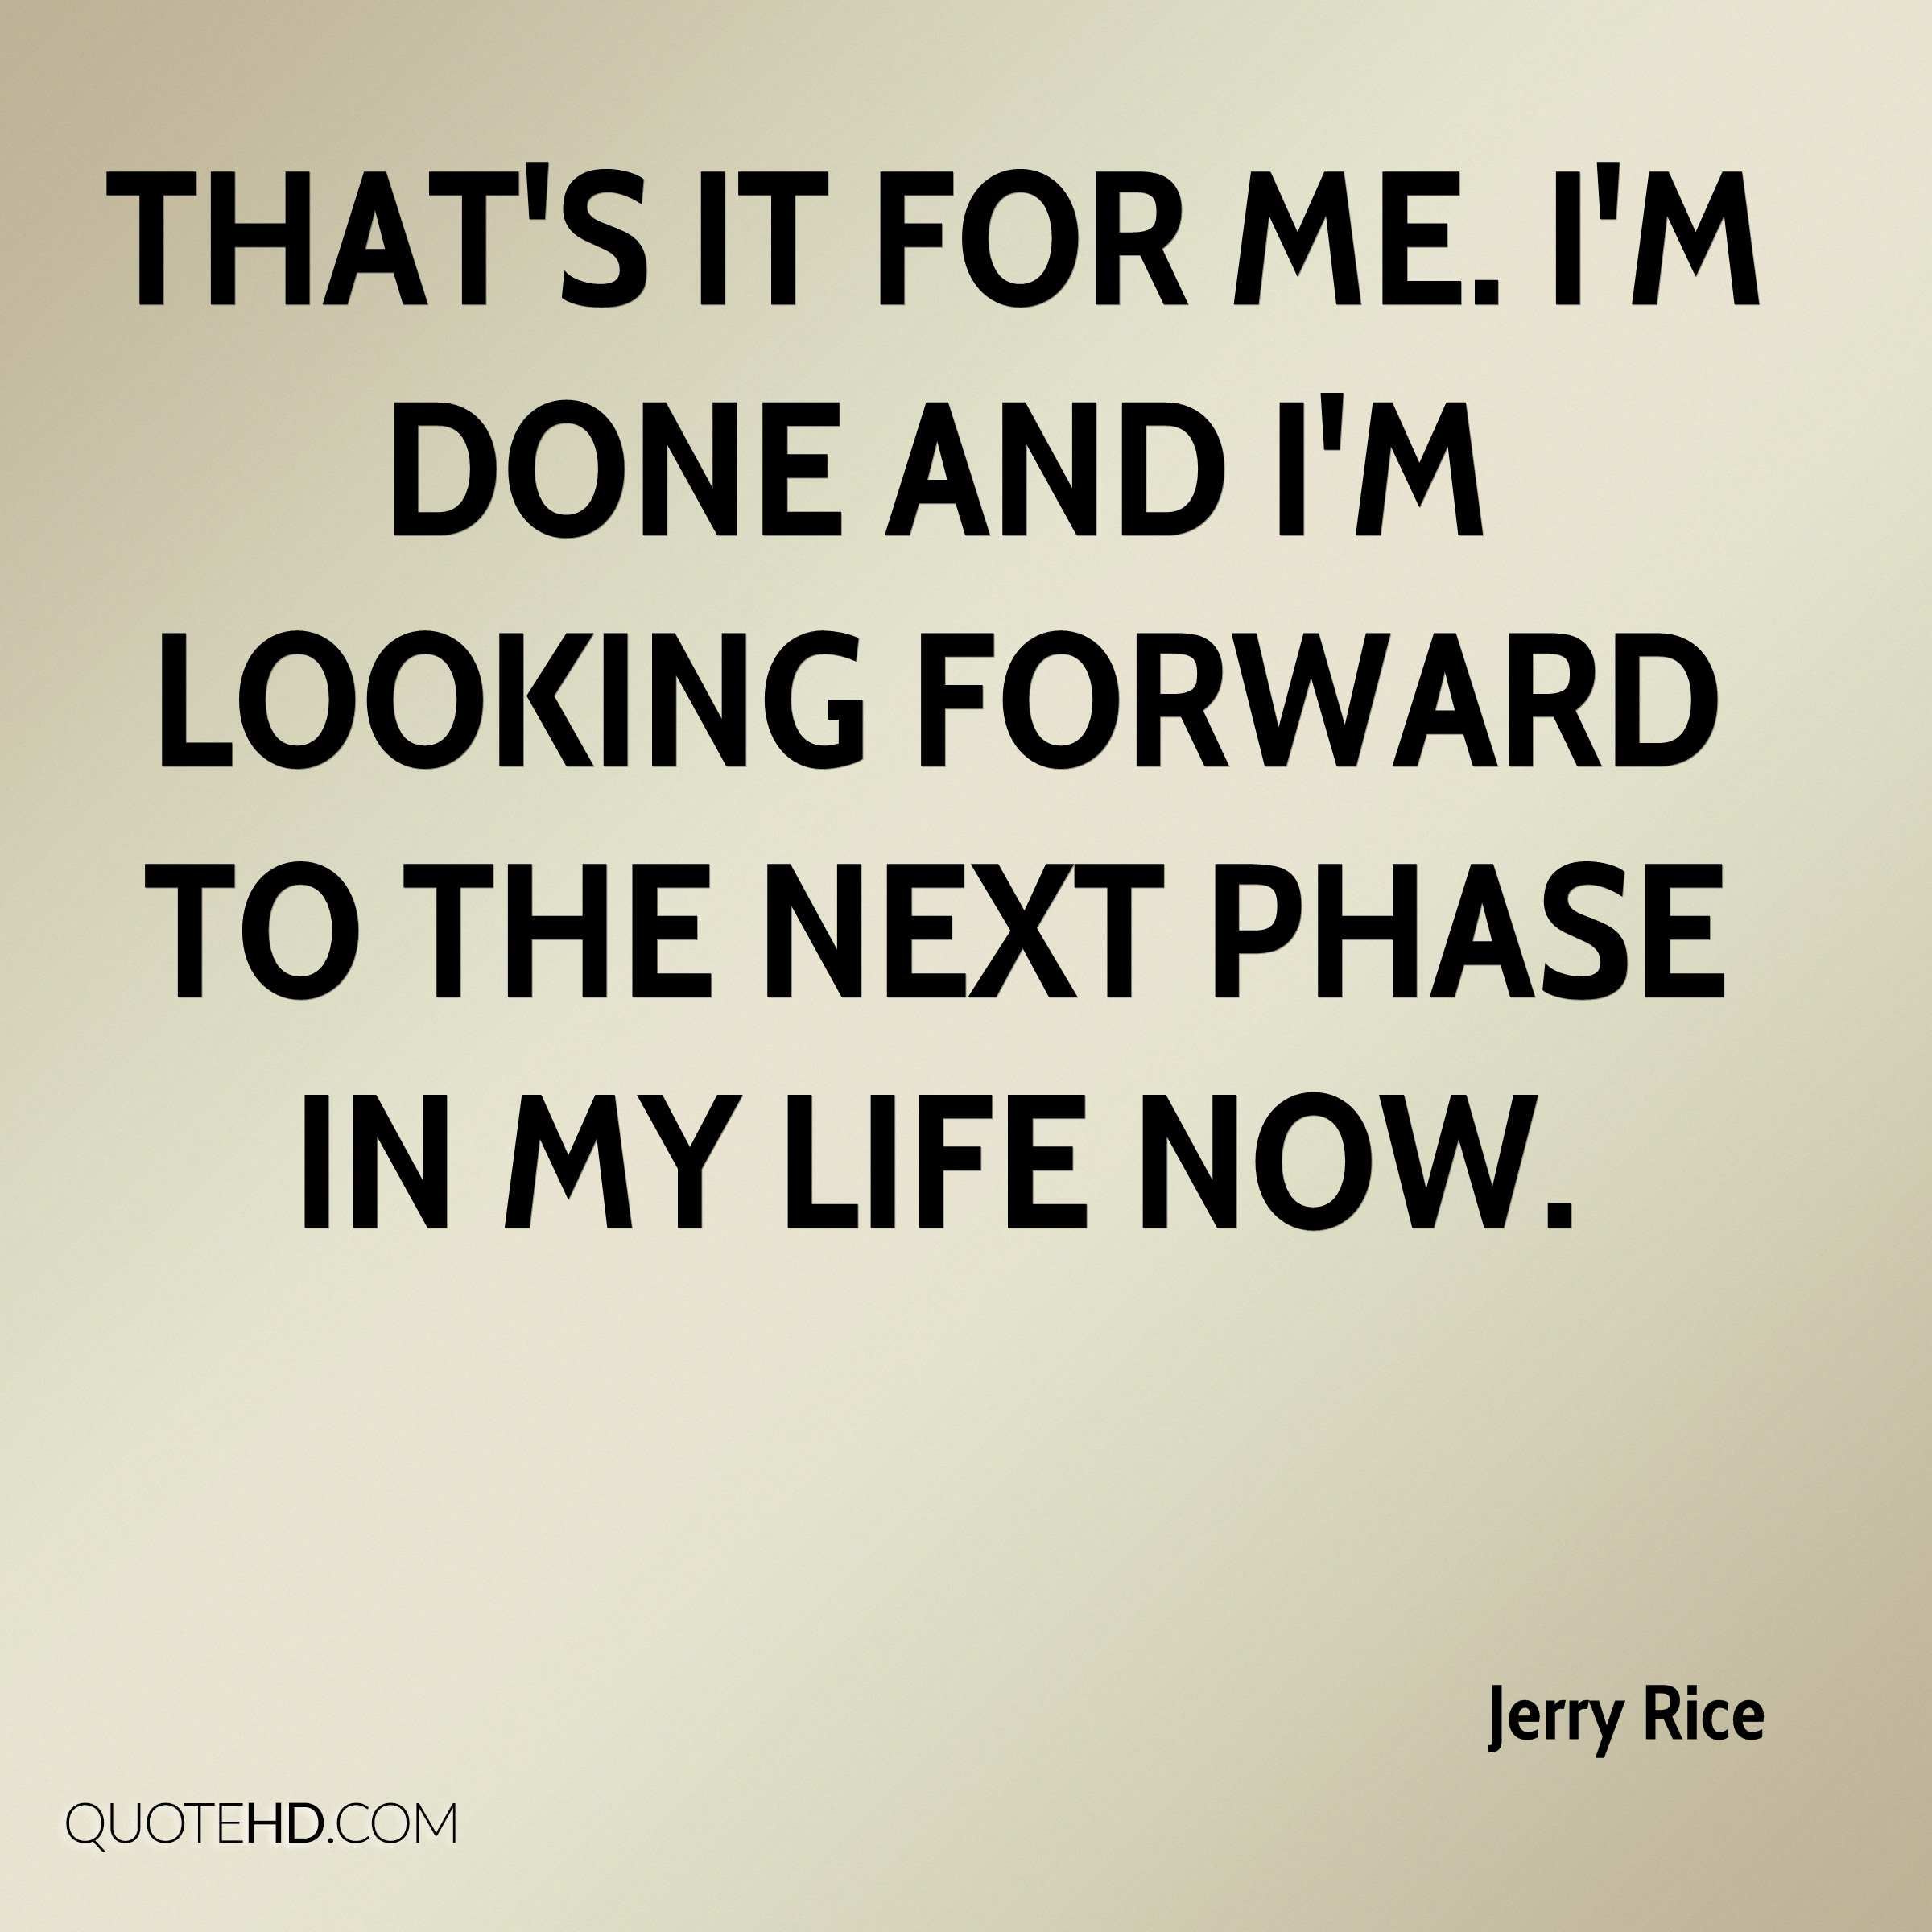 Jerry Rice Quotes